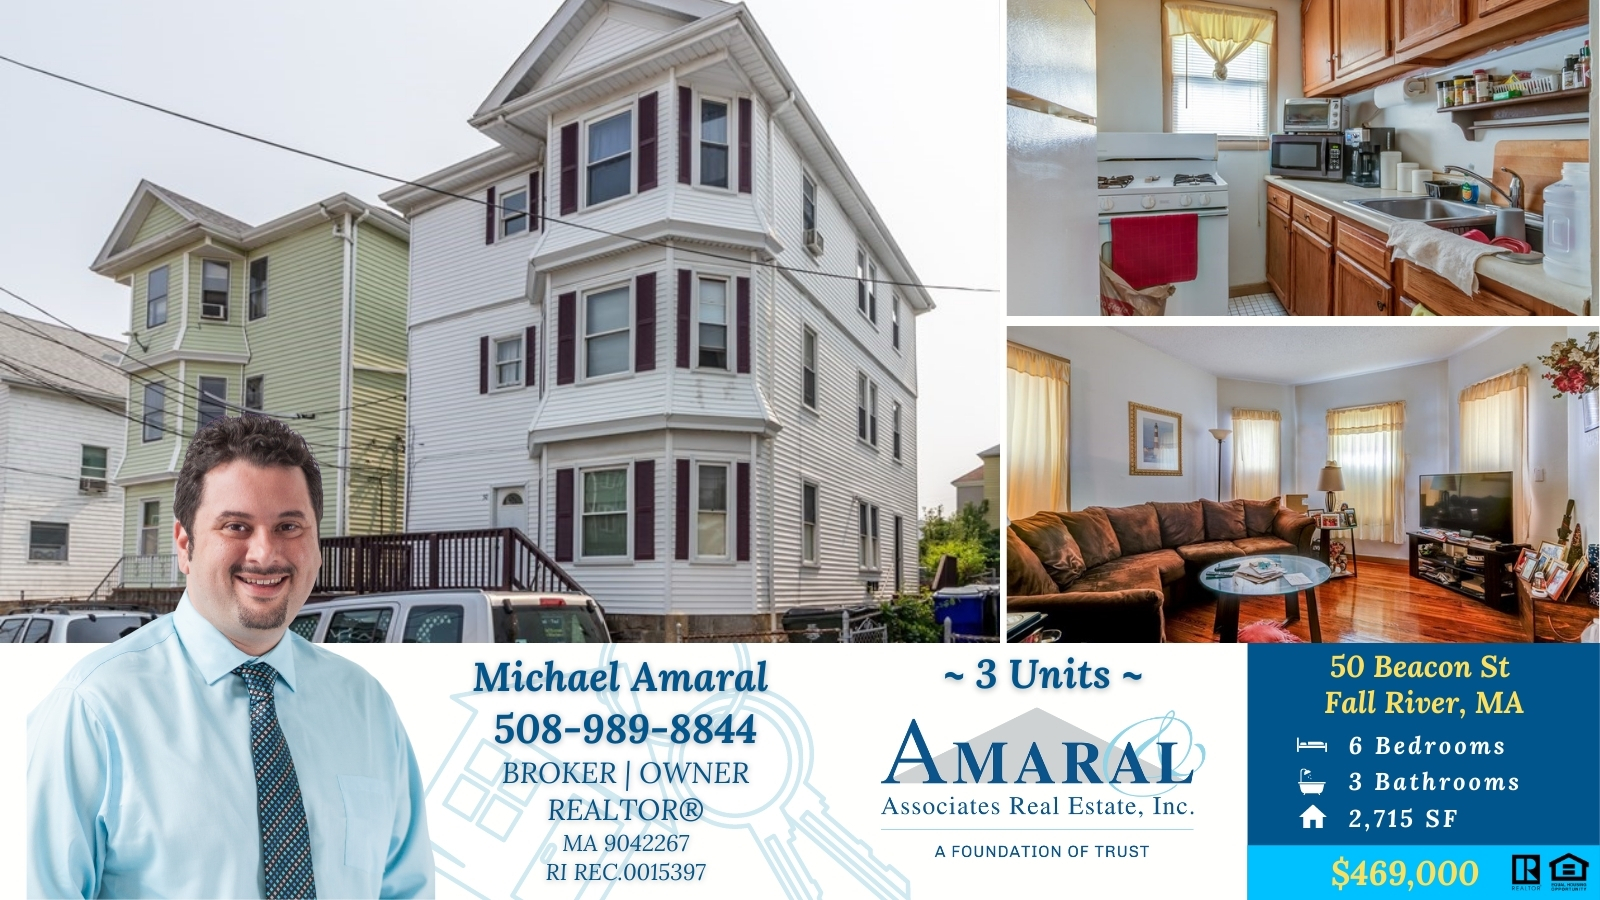 NEW LISTING ~ 50 Beacon St, Fall River, MA ~ $469,000